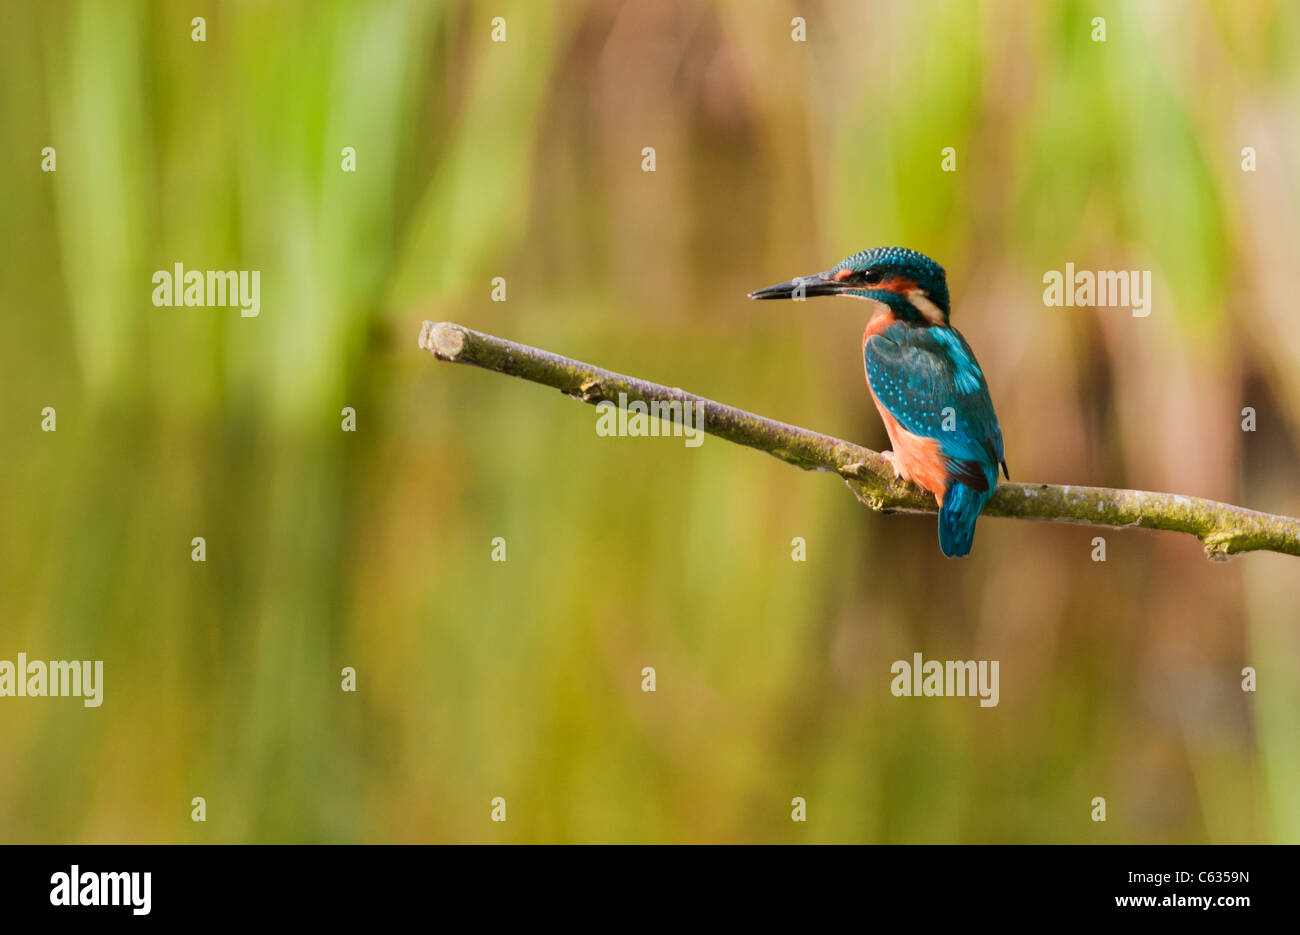 Male Common Kingfisher (Alcedo atthis) perched - Stock Image